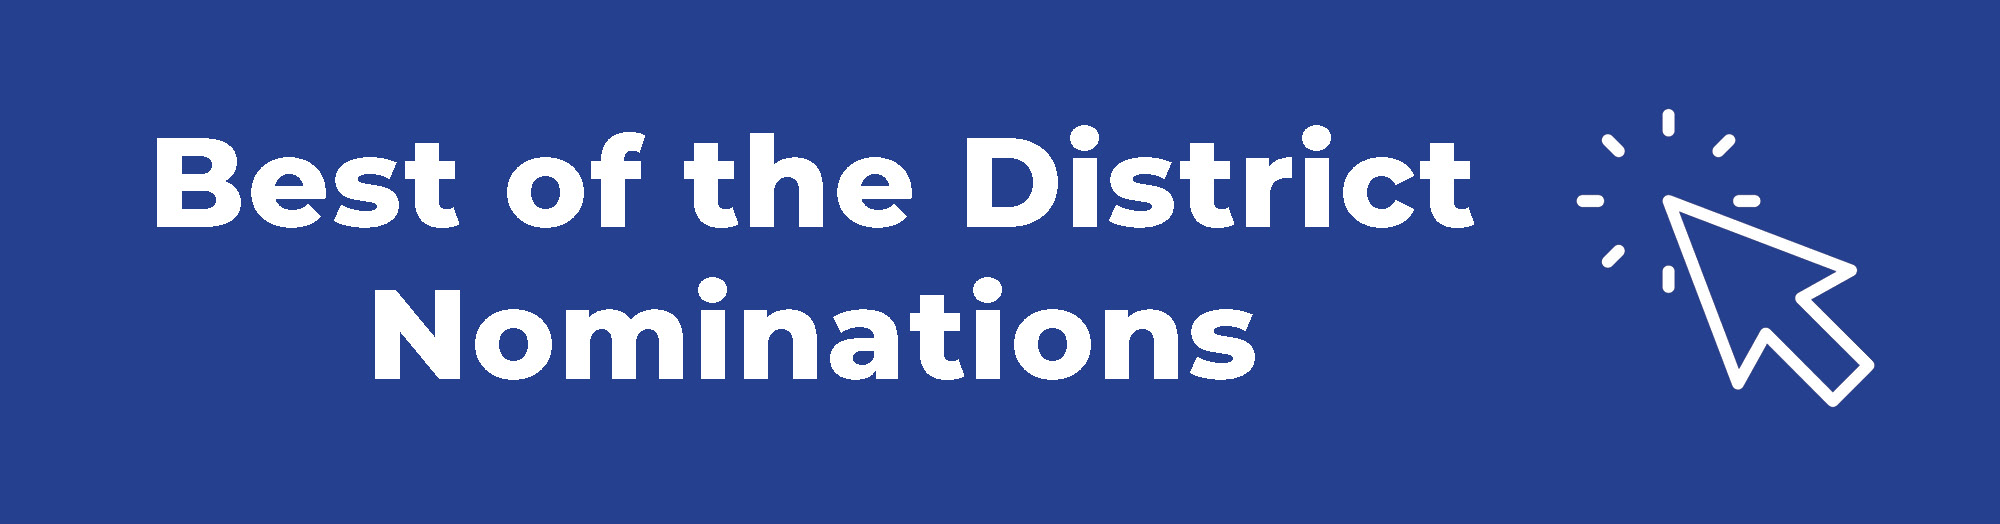 Best of the District Nominations 2021